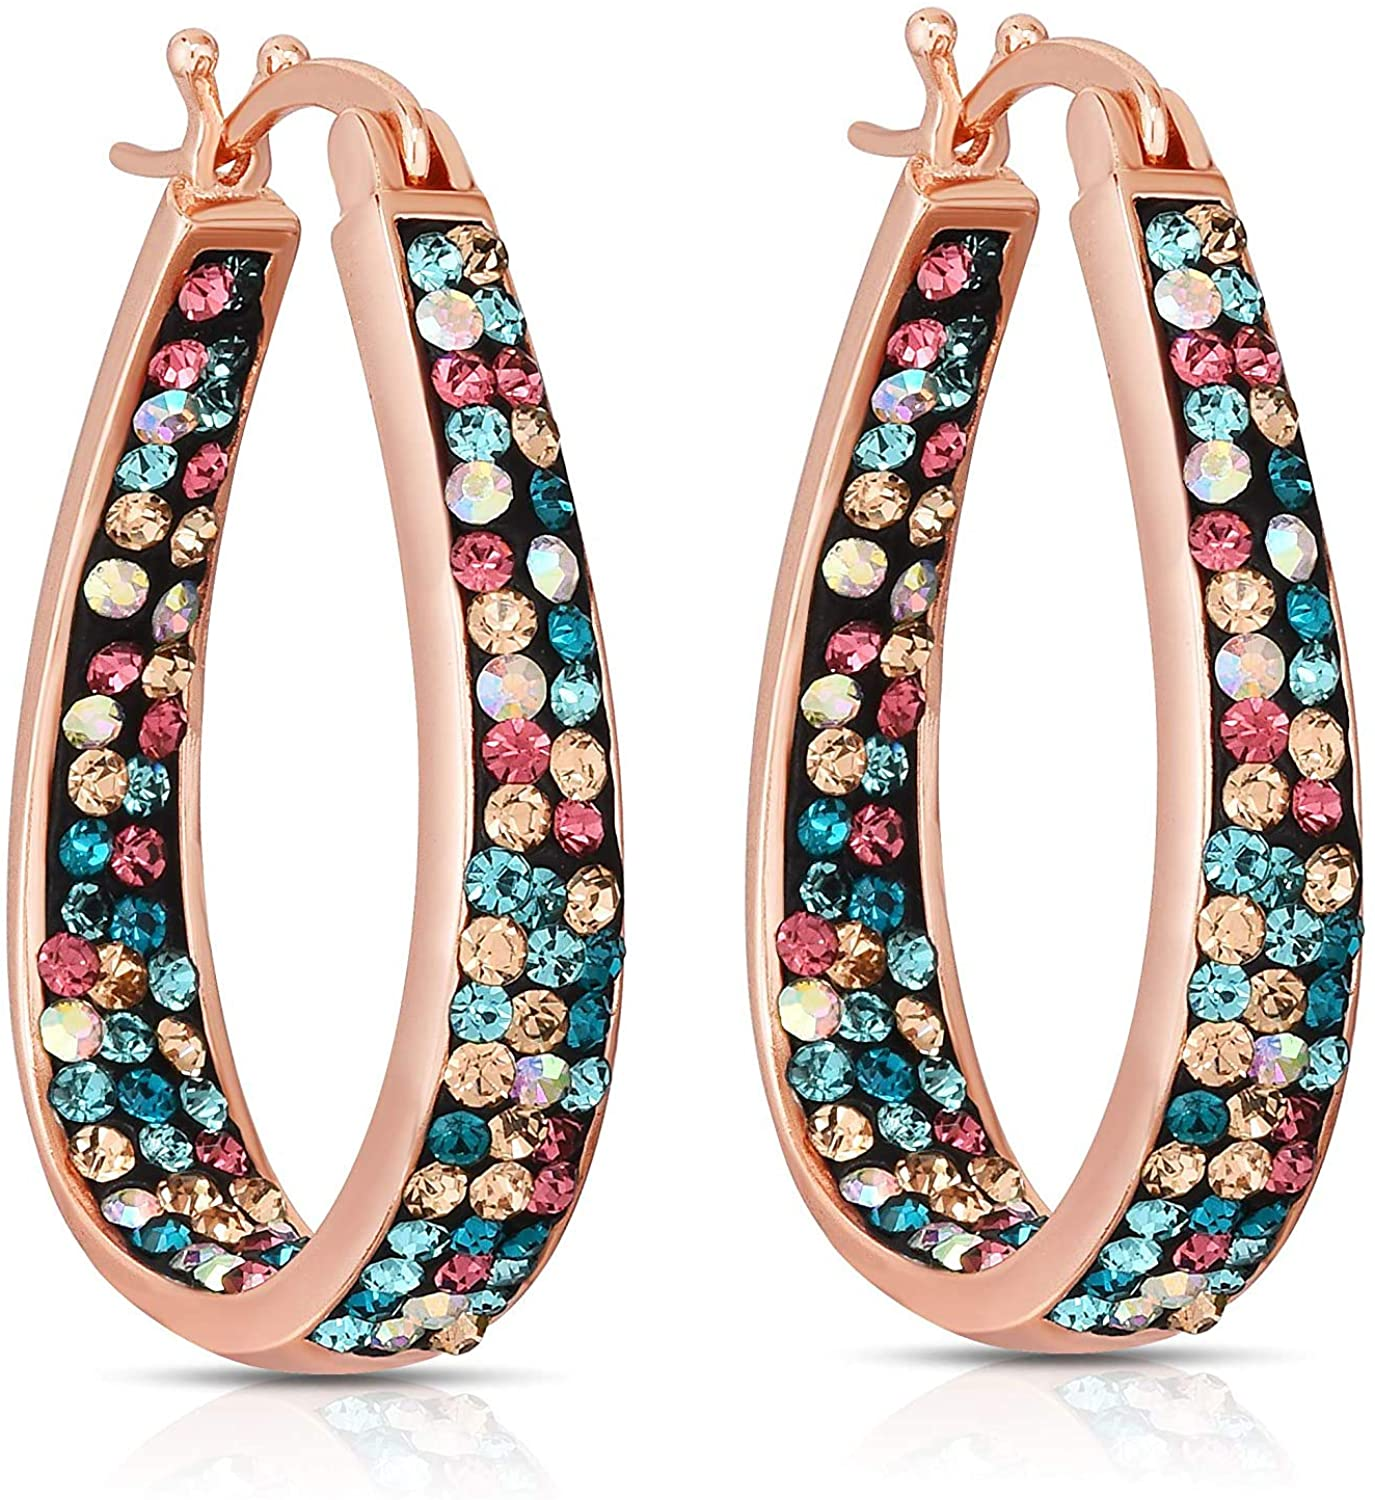 Savlano Inside Out Oval Shape Crystal Hoop Earrings For Women & Girls Comes With Savlano Gift Box